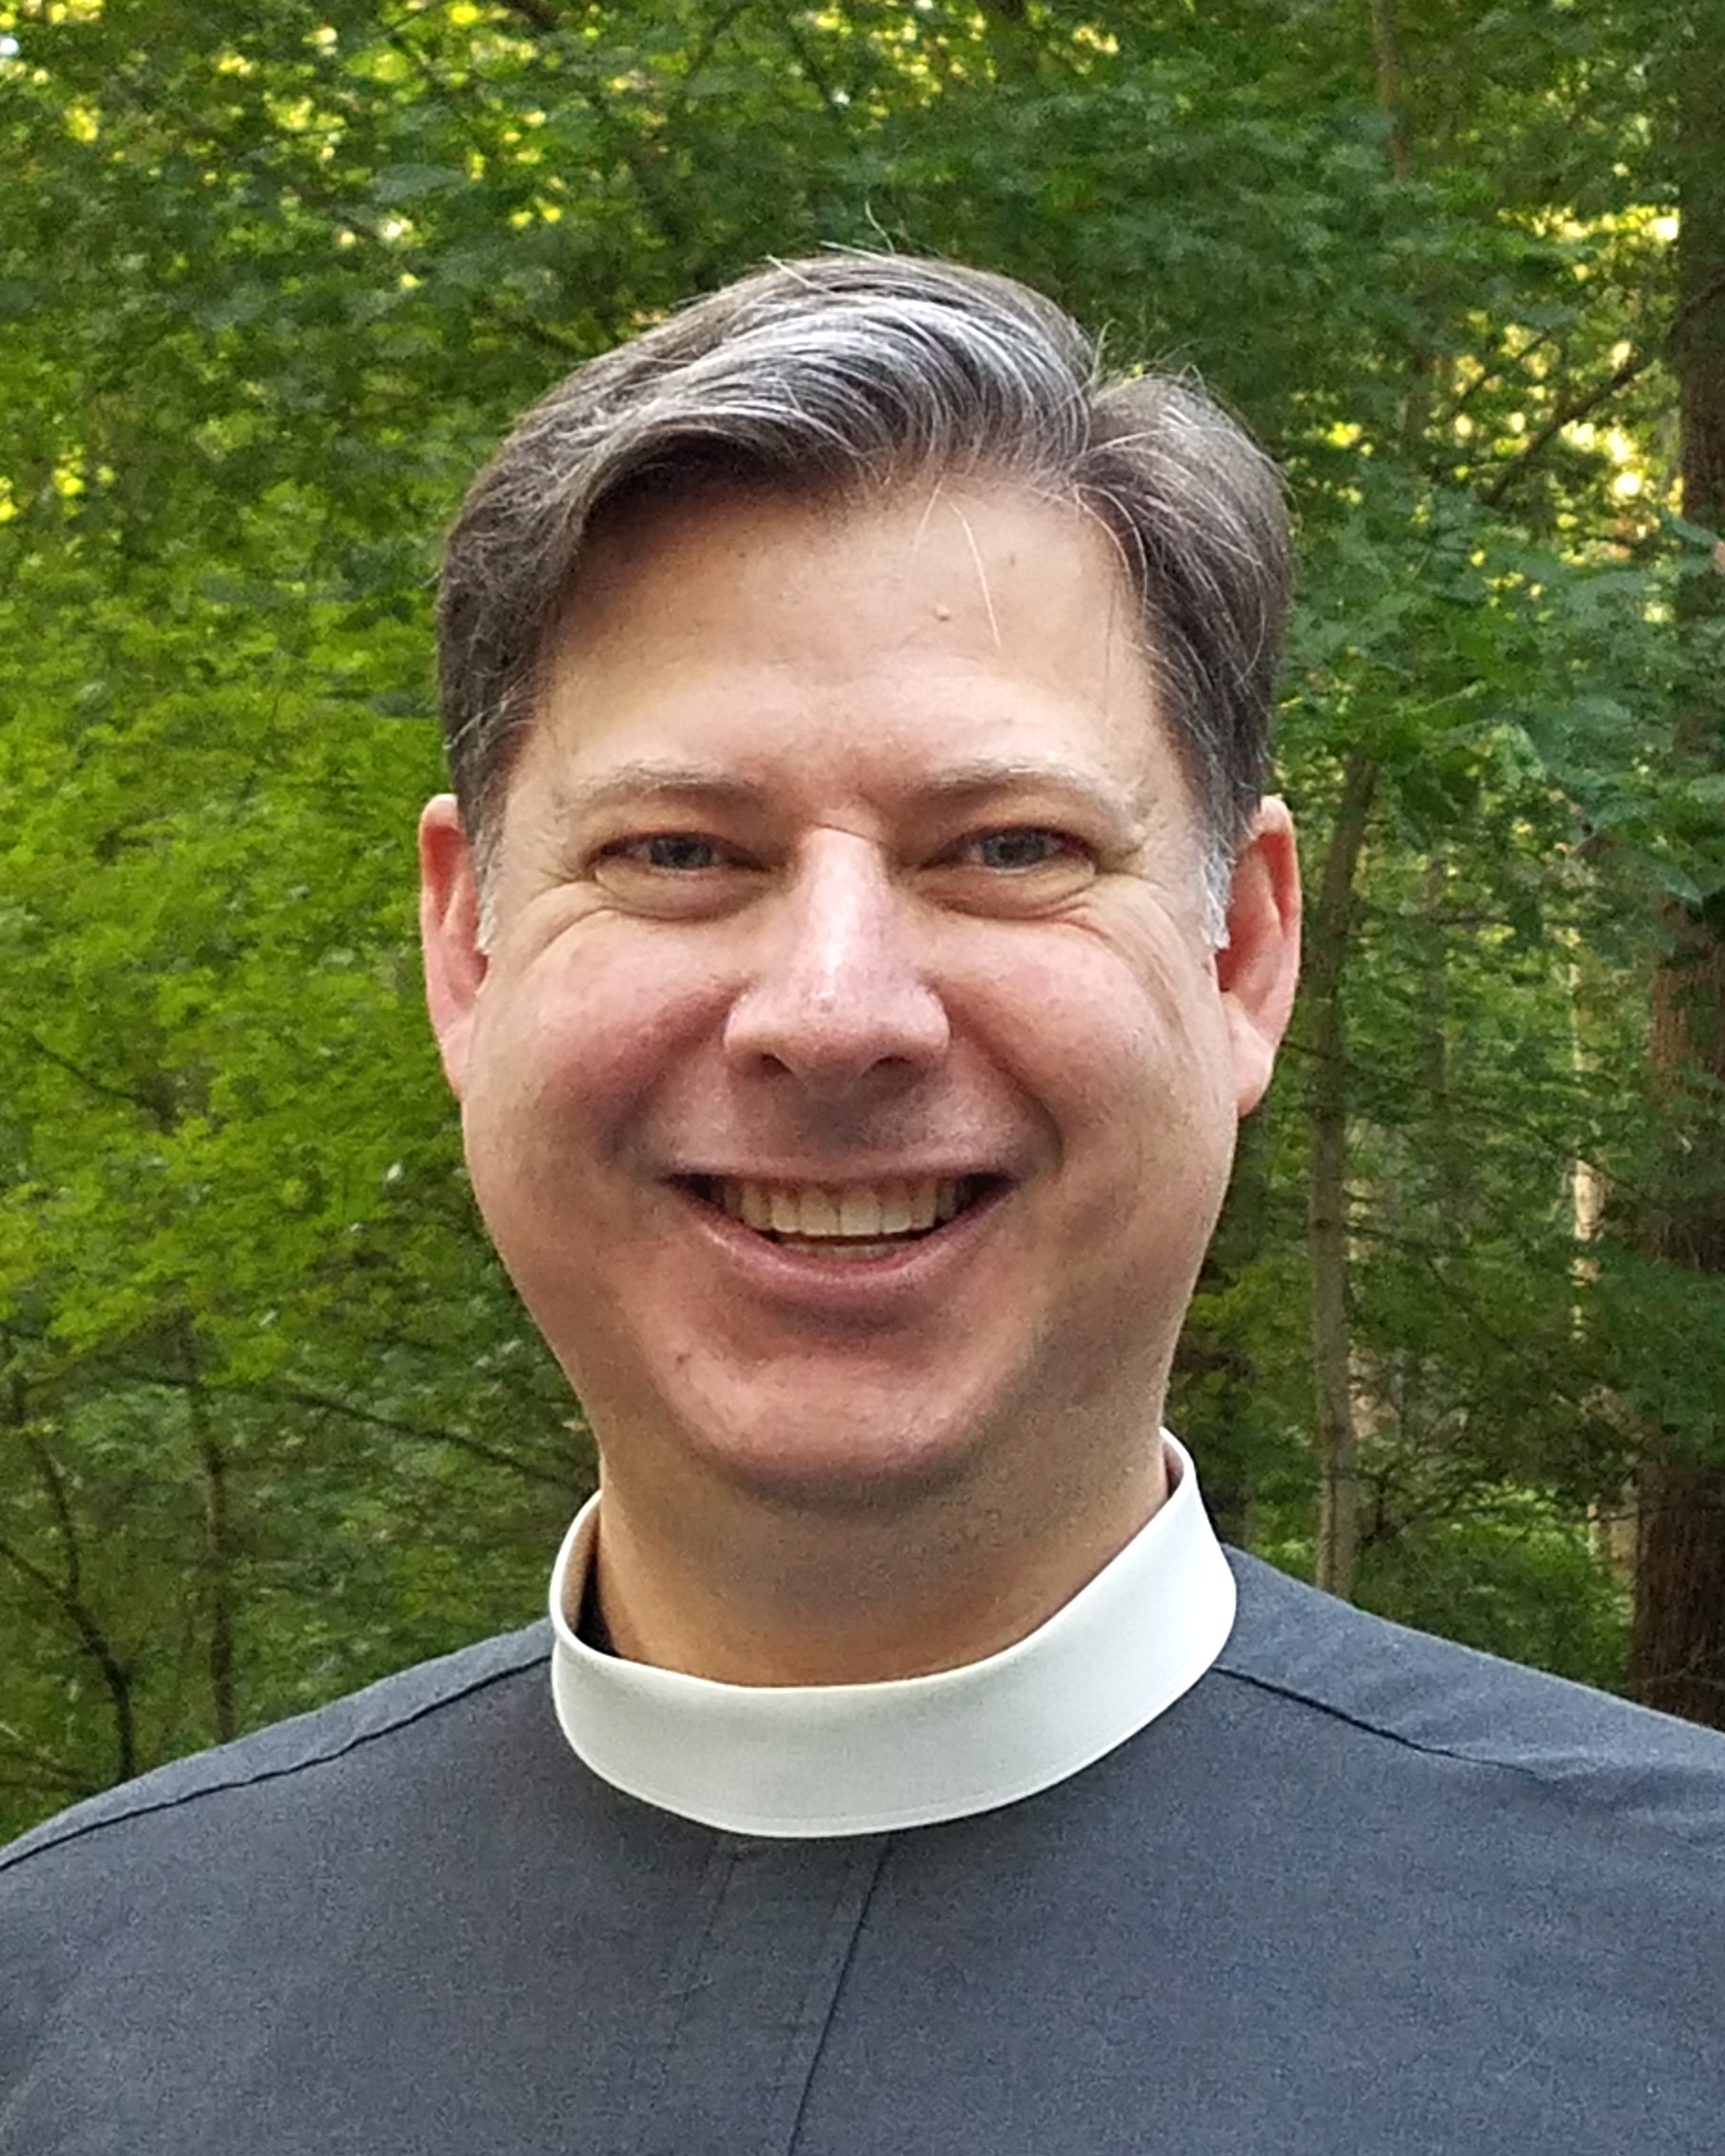 The Rev. James Isaacs, Assistant Rector